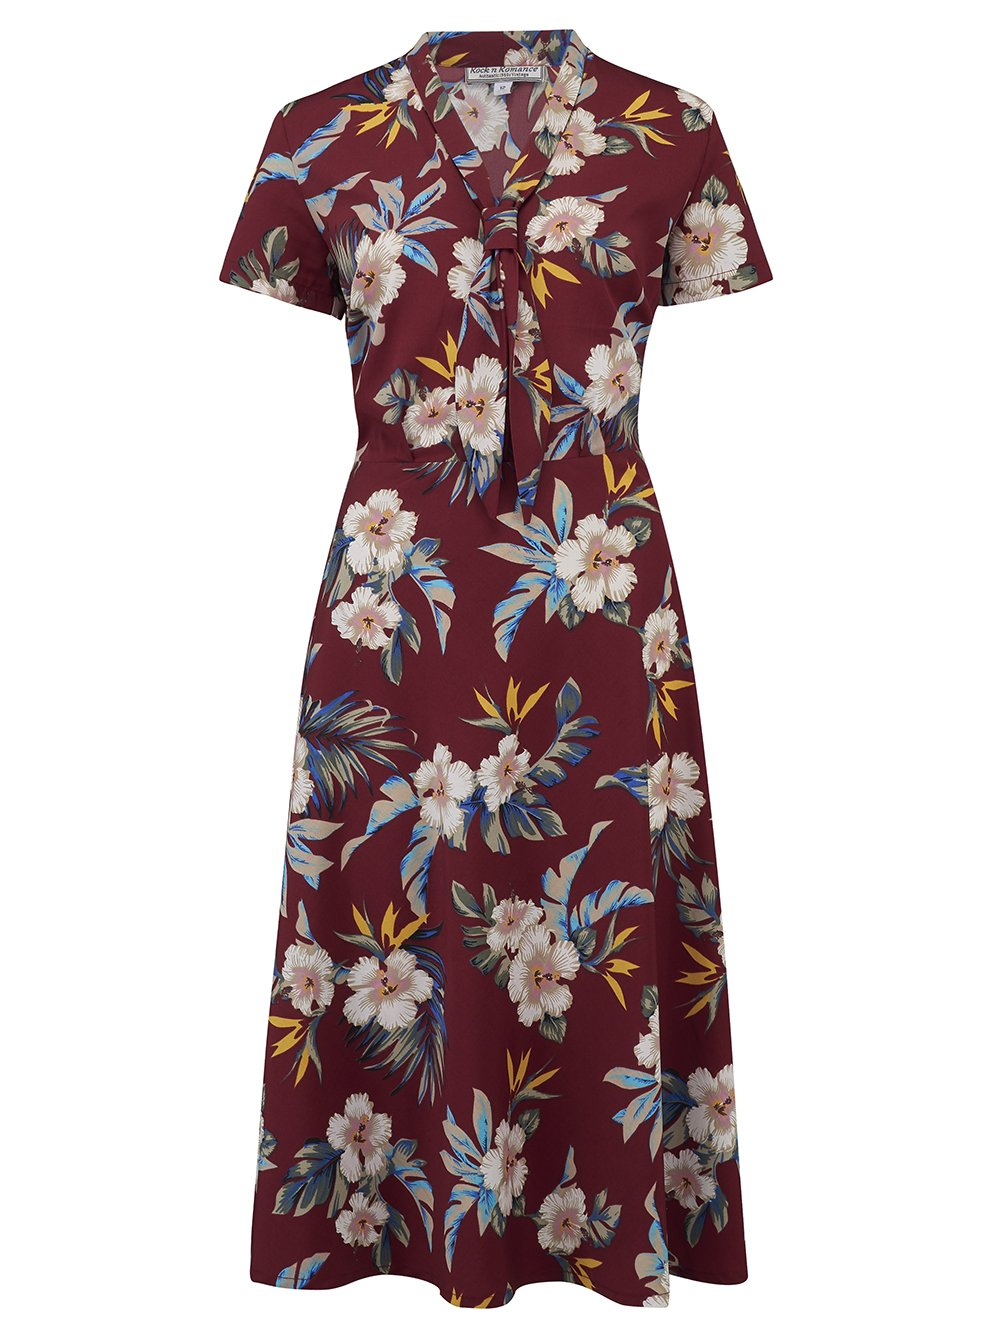 Swing Dance Clothing You Can Dance In Sample Sale Jean Tea Dress in Wine Hawaiian Print Perfect 1950s Tiki Style £25.00 AT vintagedancer.com